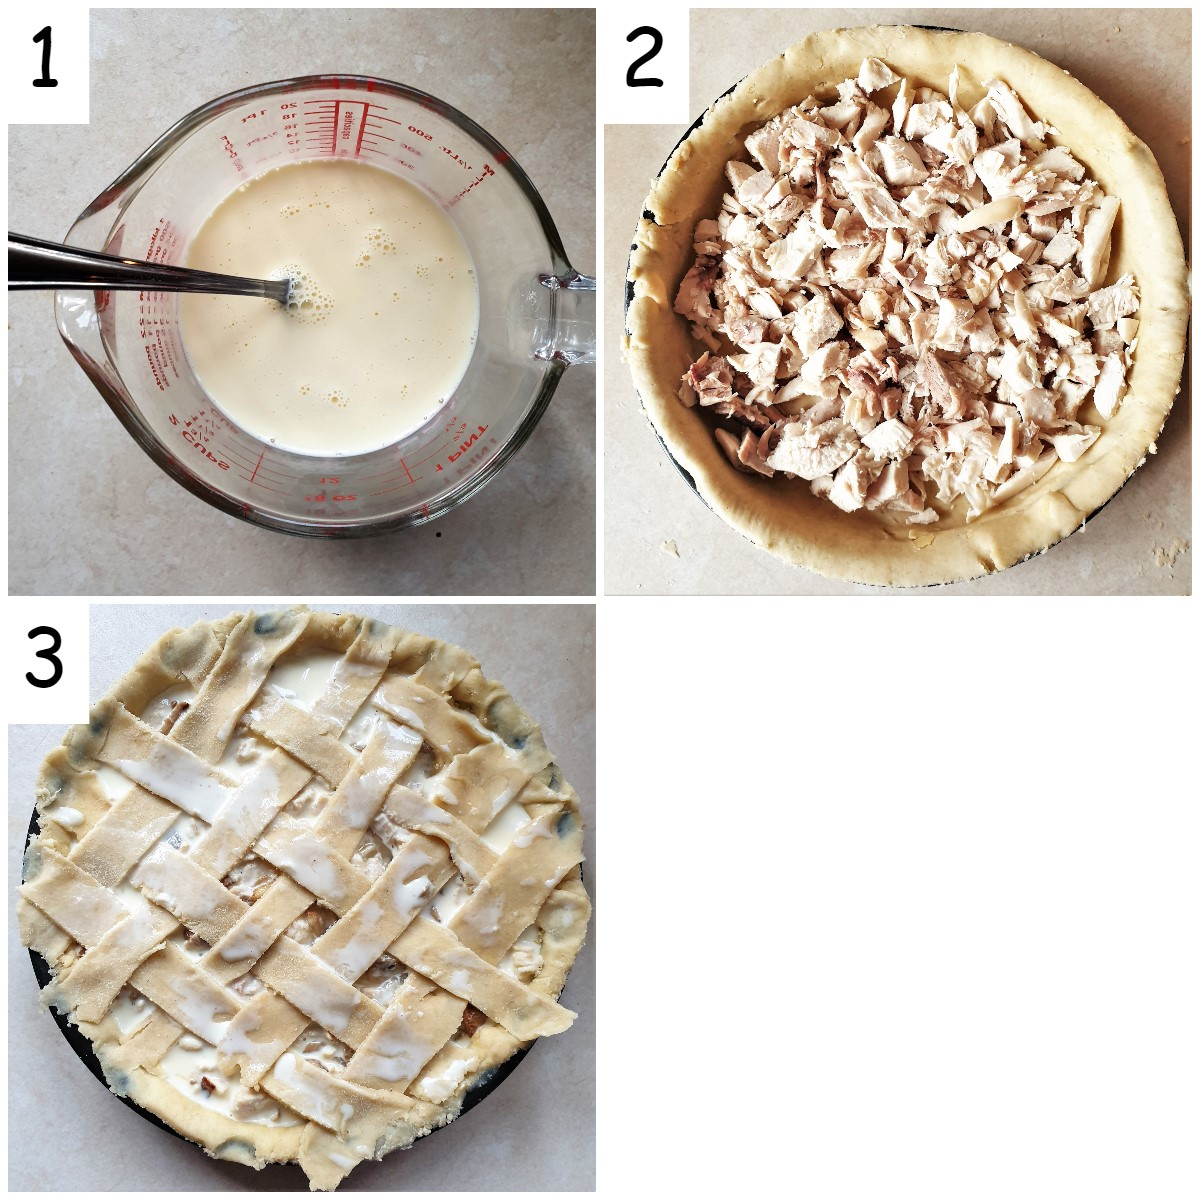 Collage of 3 images showing how to fill the pie and cover with pastry.